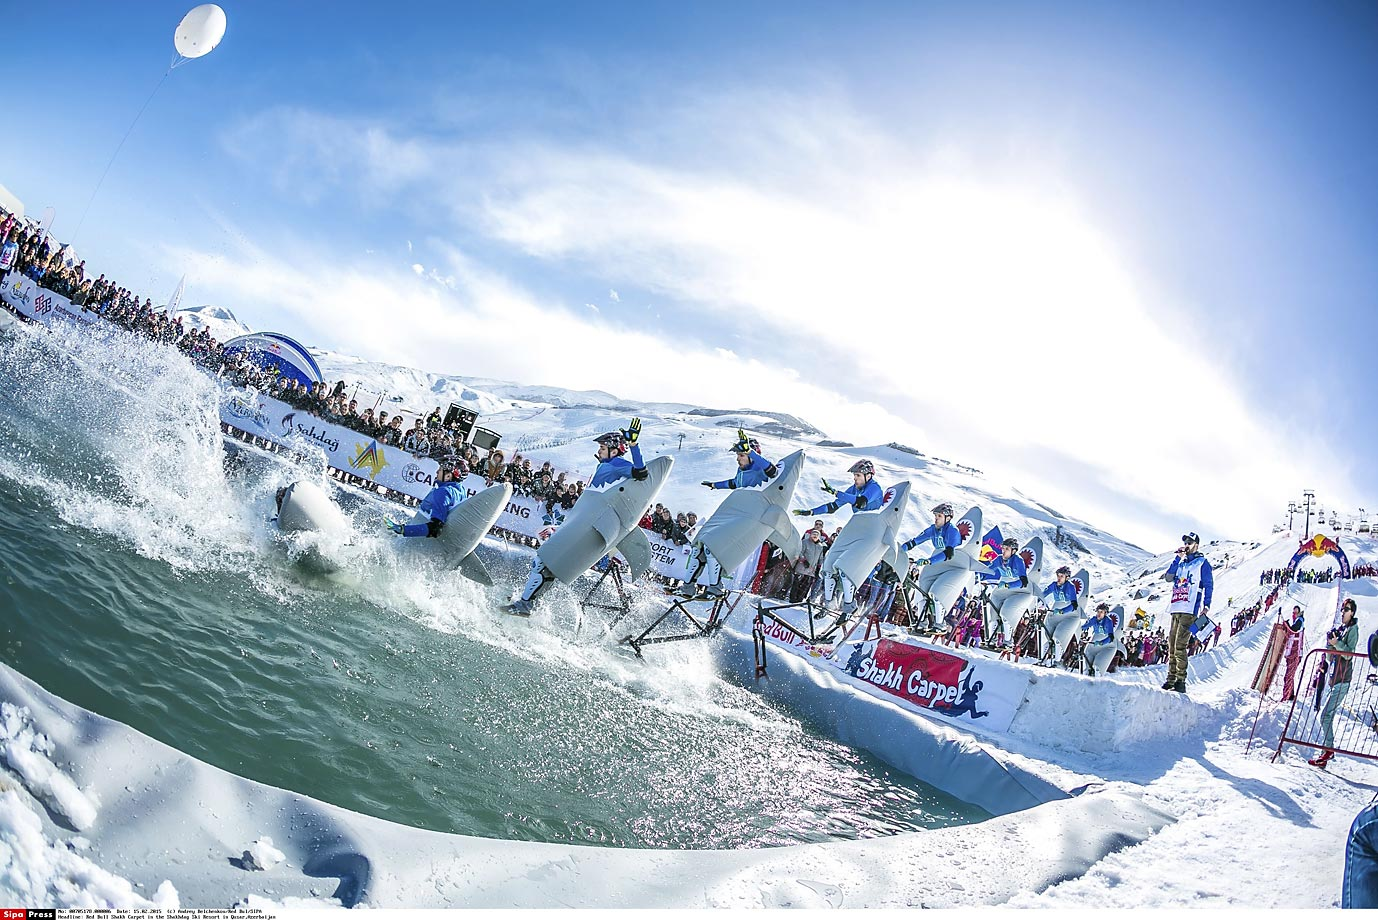 Sharks, or people?, jumping into the pool during the Red Bull Shakh Carpet in the Shakhdag Ski Resort in Qusar, Azerbaijan.